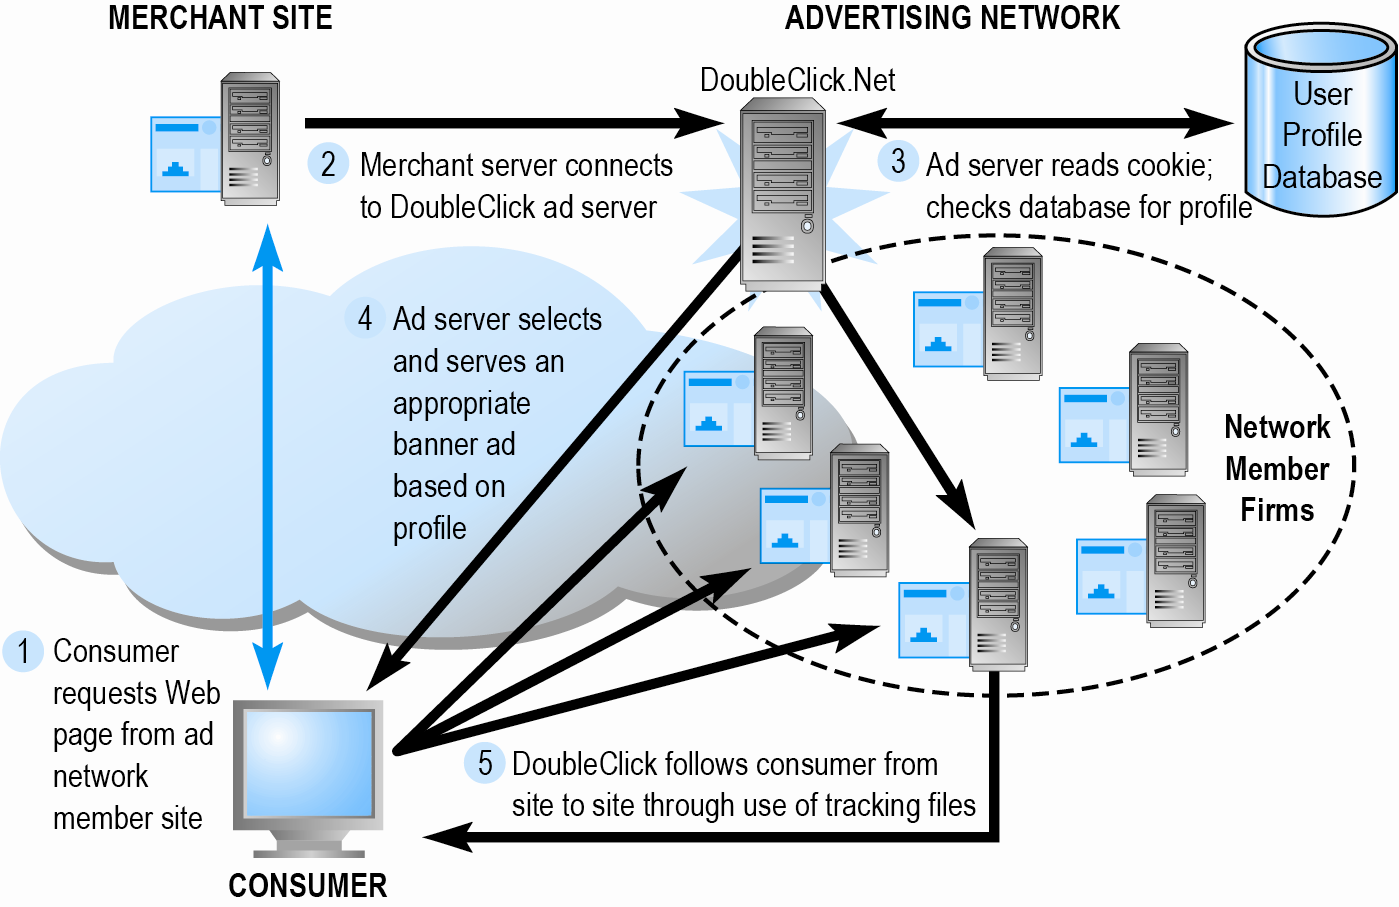 How an Advertising Network Such as DoubleClick Works Figure 6.